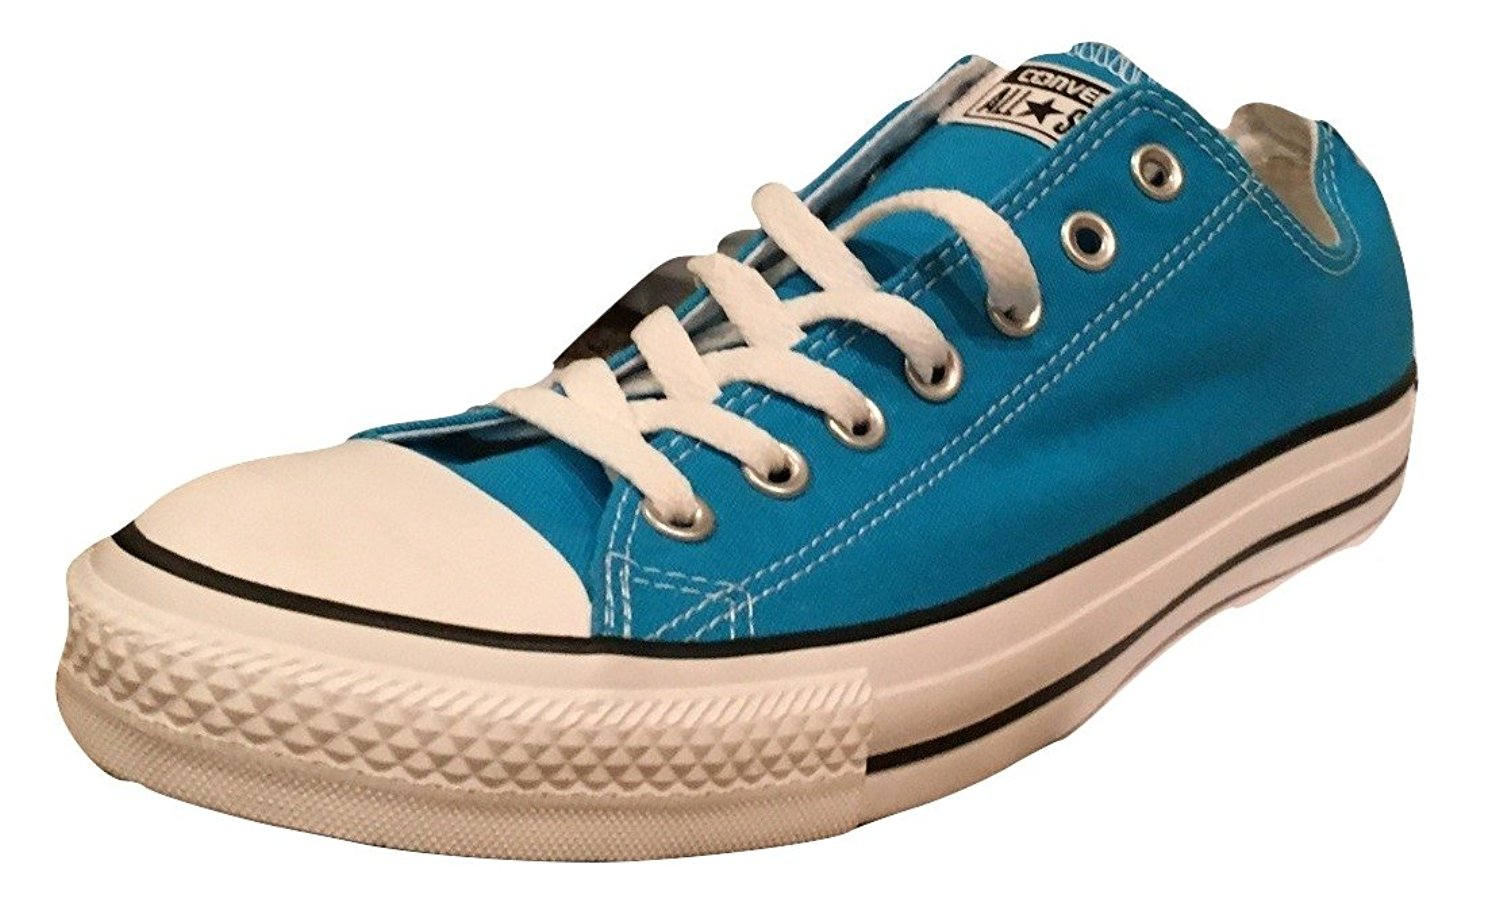 08bdb9ac441e Get Quotations · Converse Unisex Chuck Taylor Ox Blue Danube Canvas Shoes  (10 Mens 12 Womens)